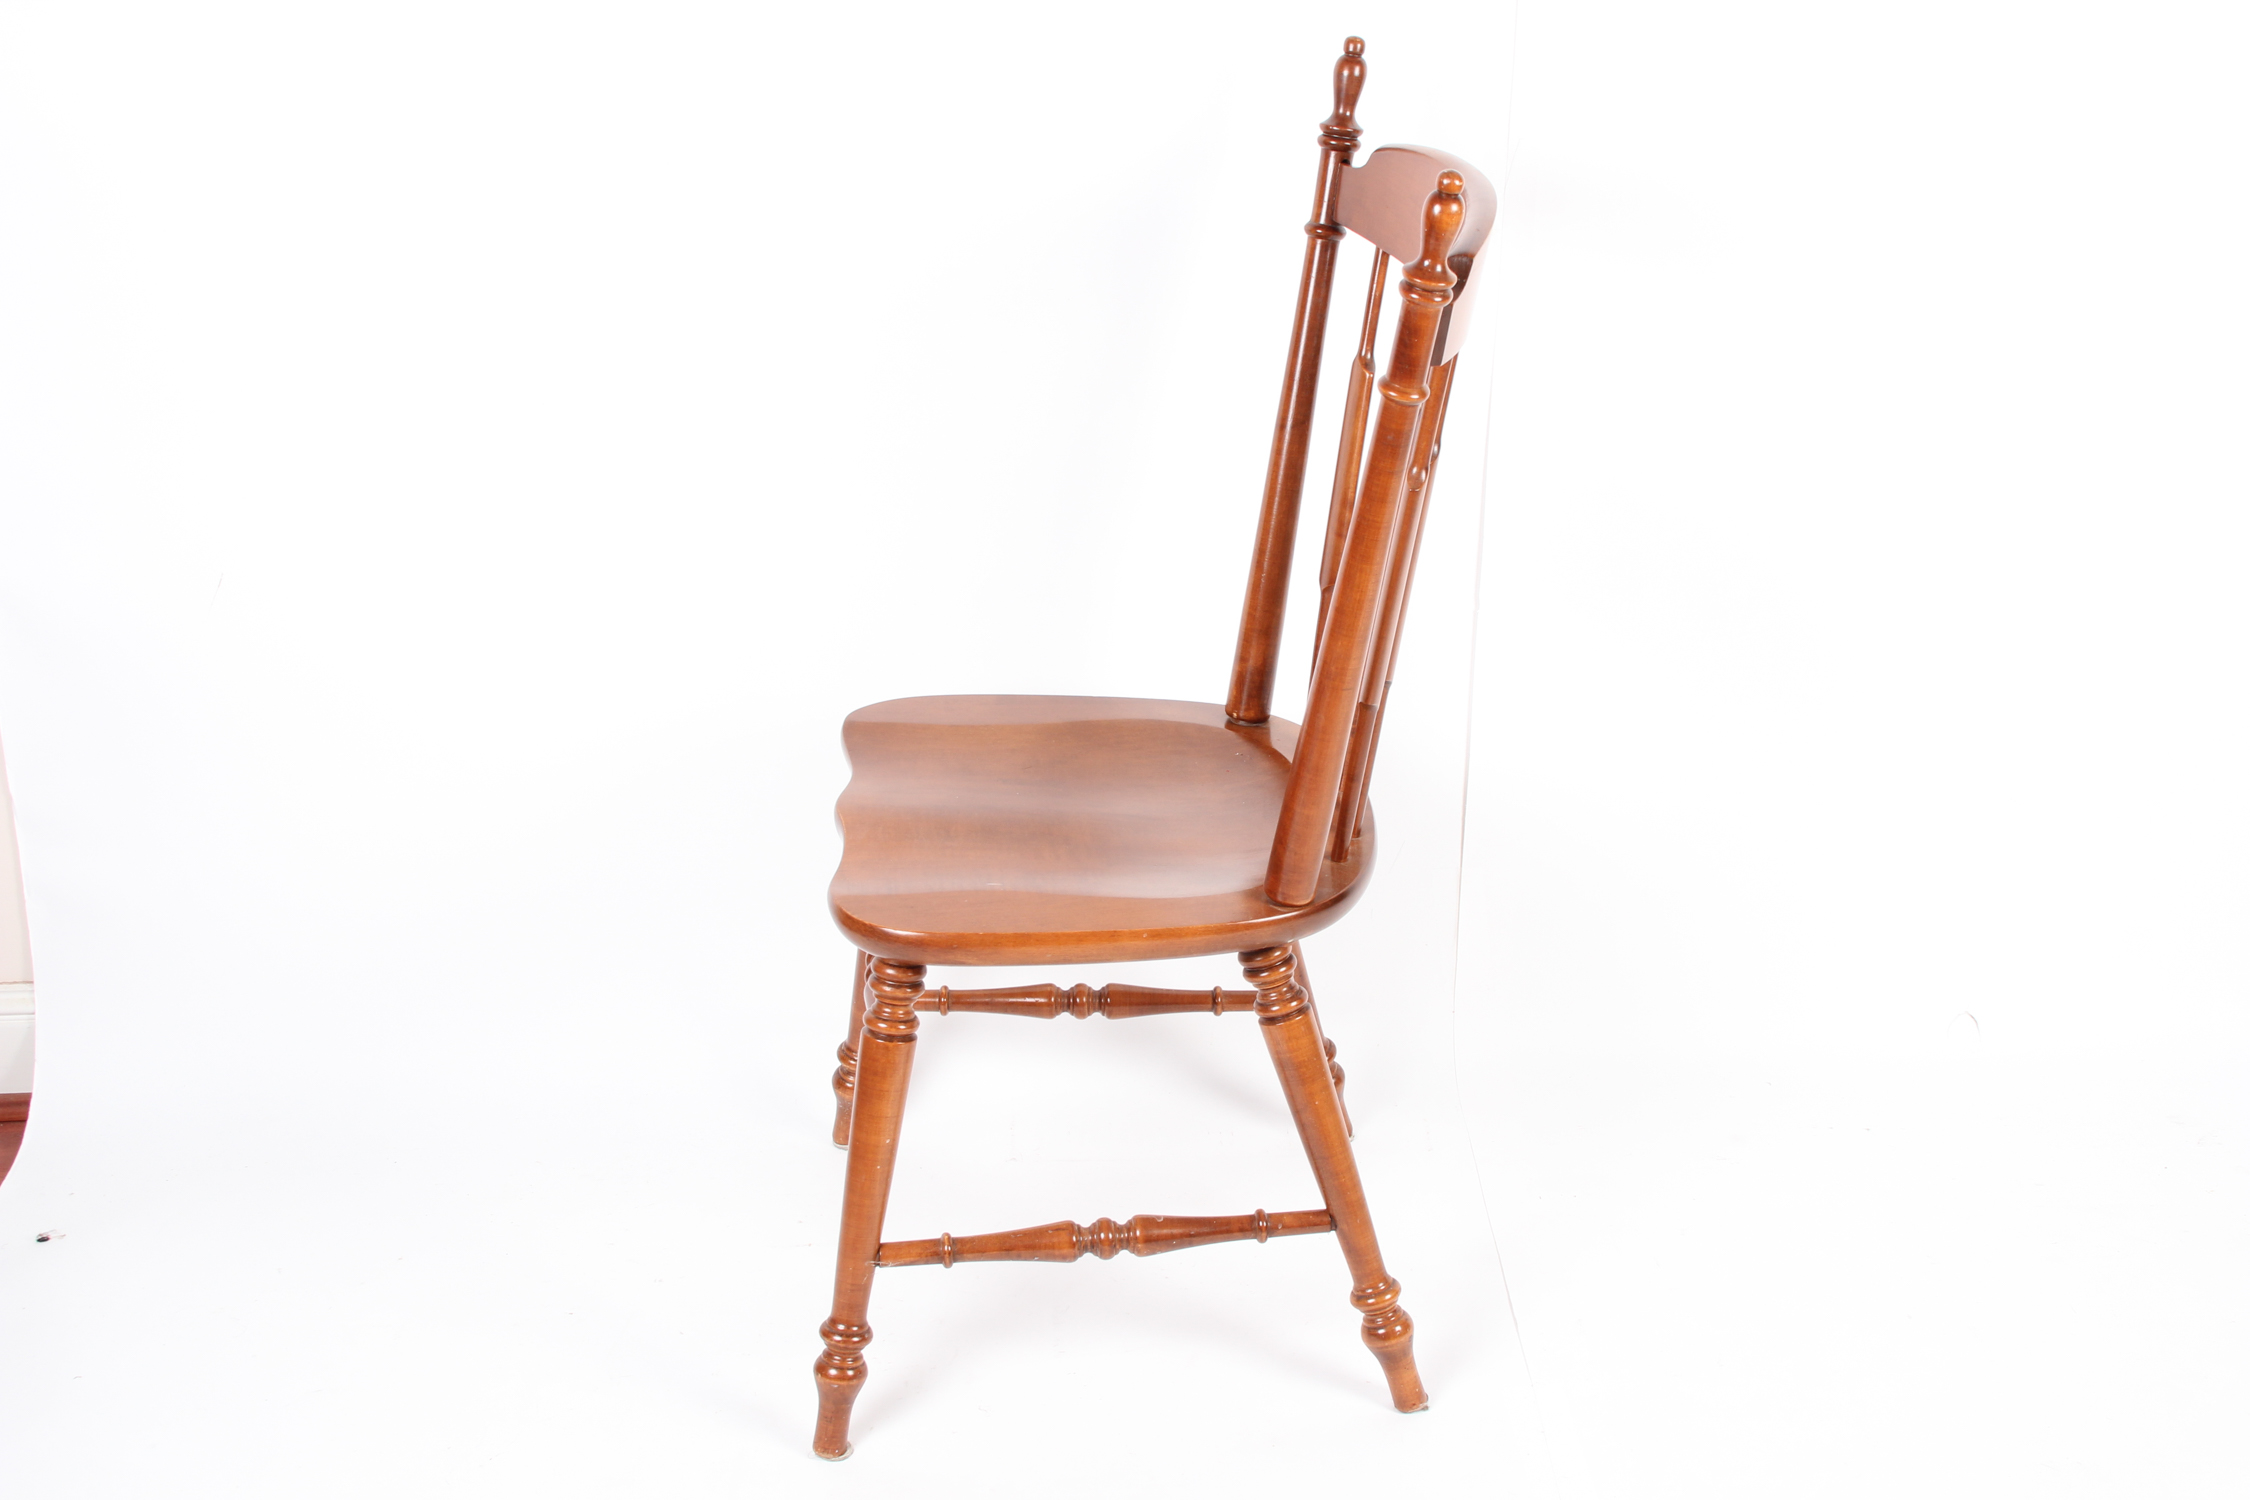 tell city chairs pattern 4548 back support office chair co walnut dining ebth